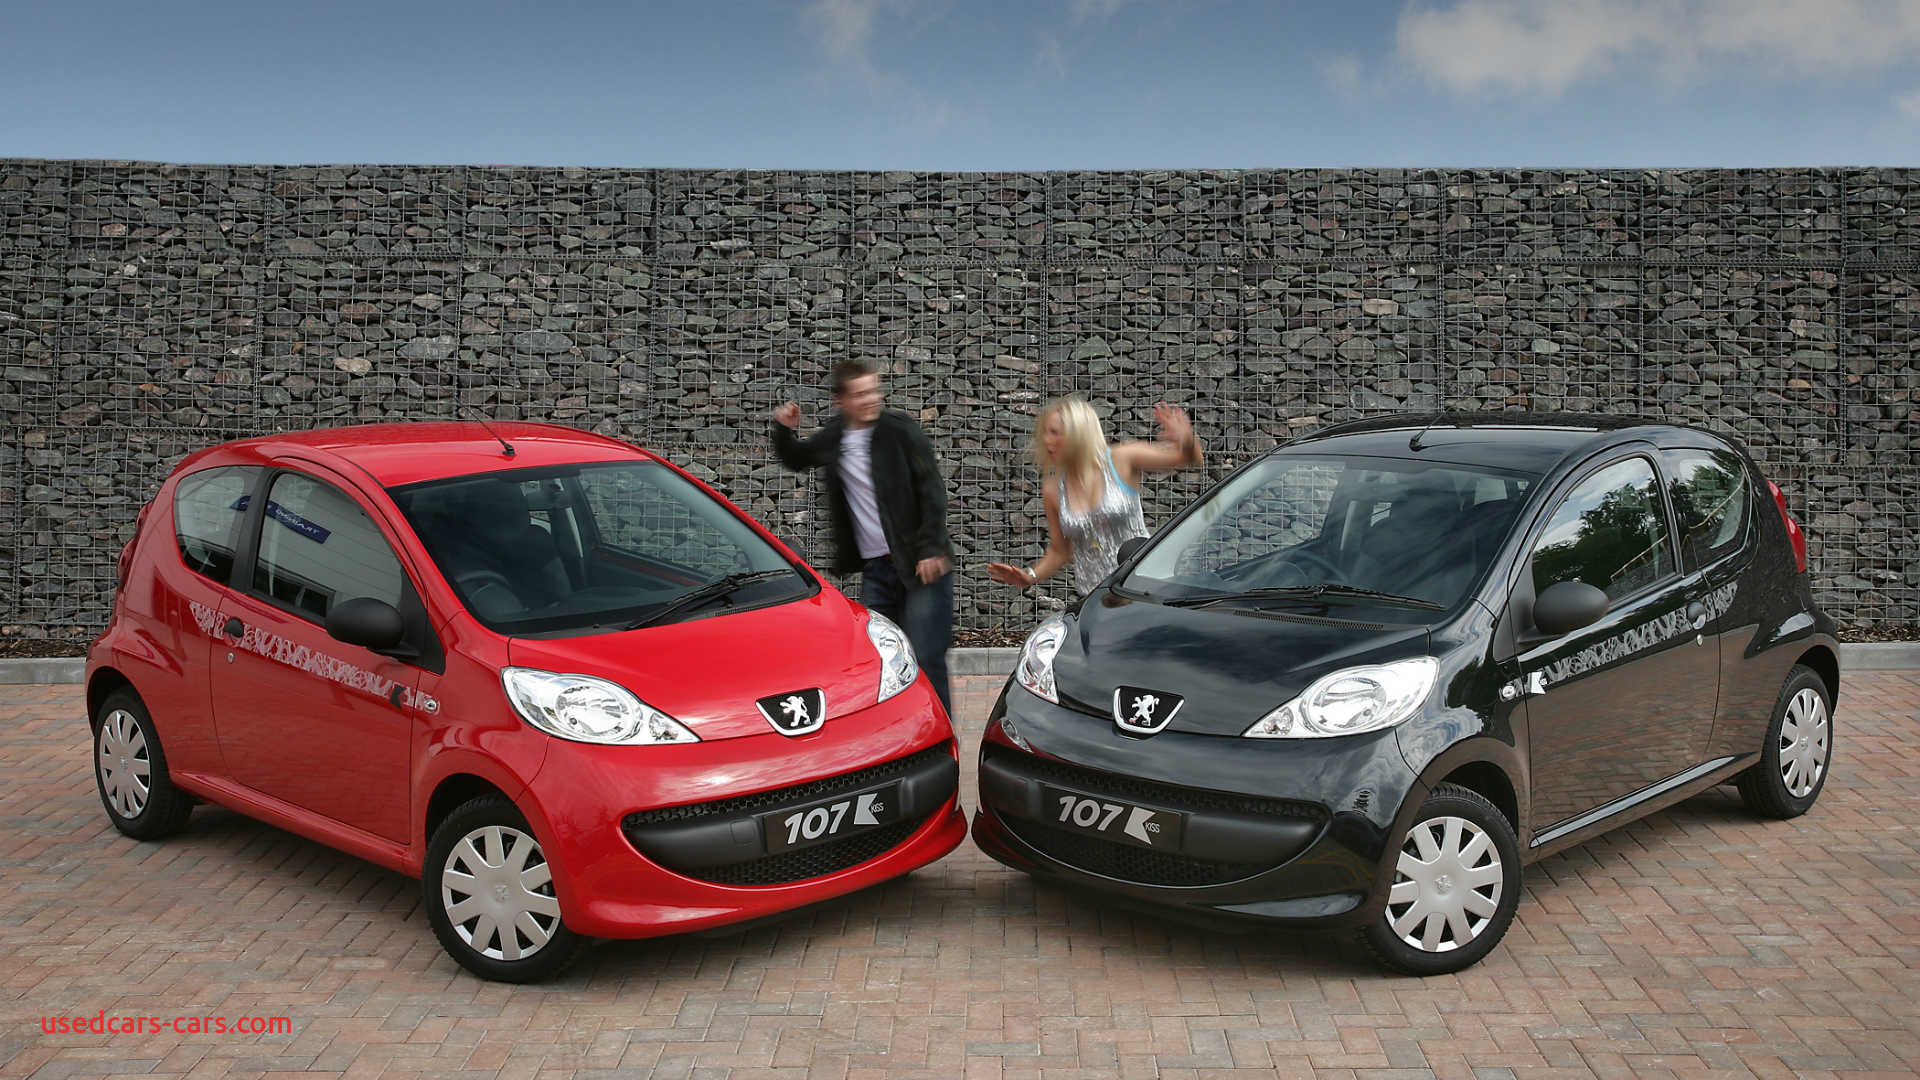 Used Cars Near Me Under 1000 New the 10 Cheapest Cars for 17 Year Olds to Insure